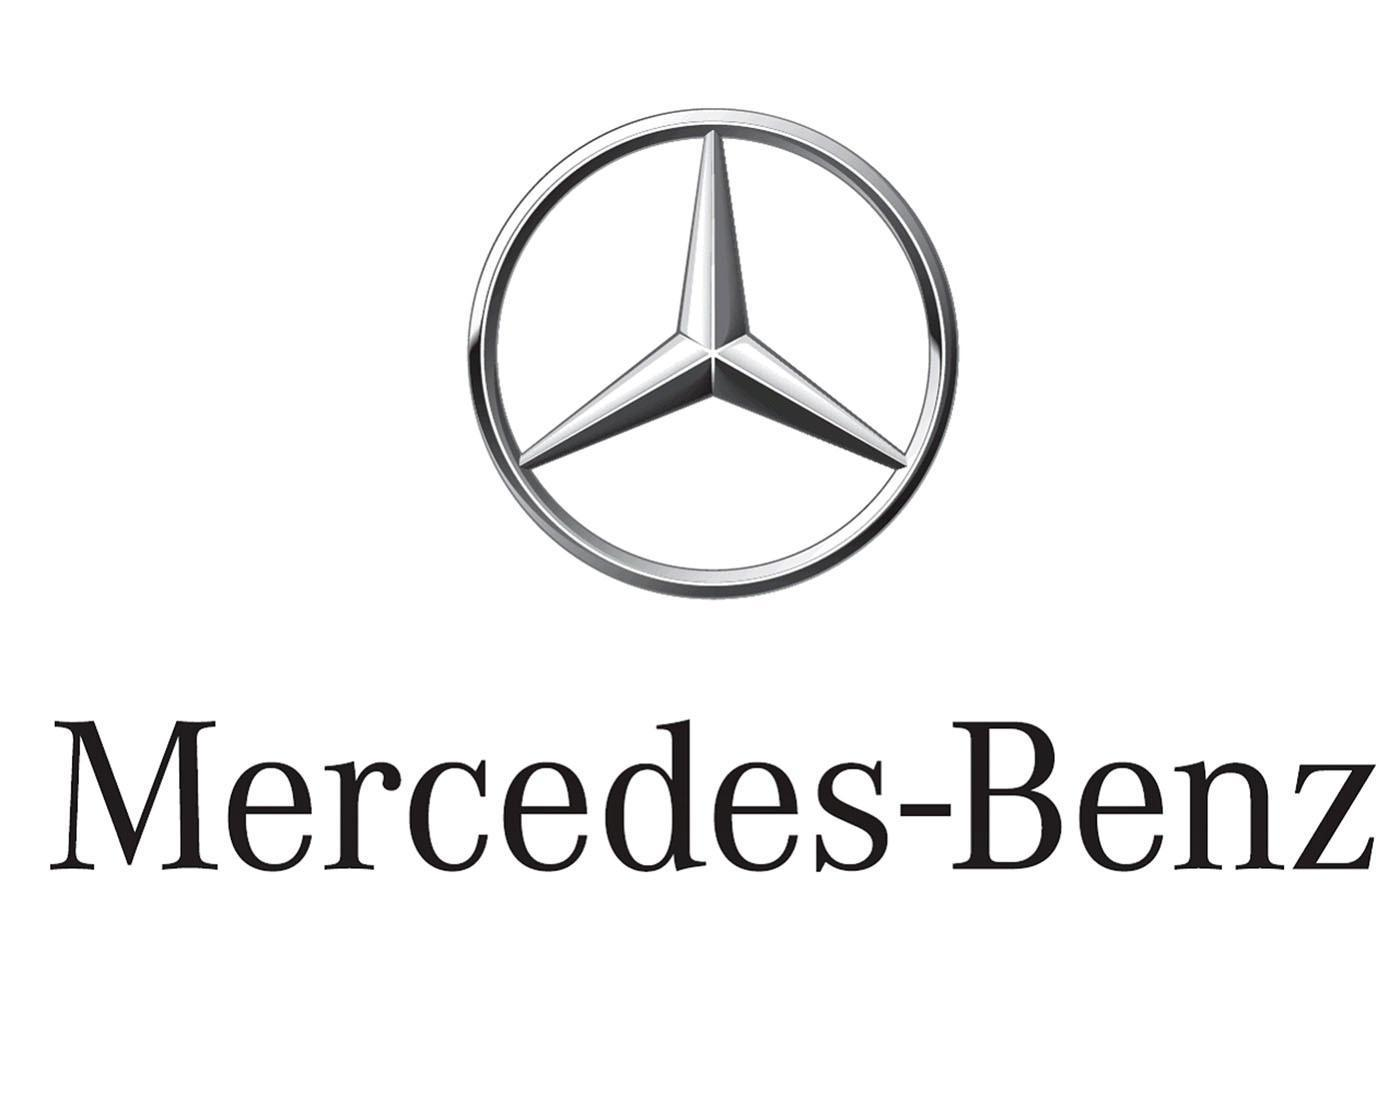 Mercedes - Famous Logos in the World